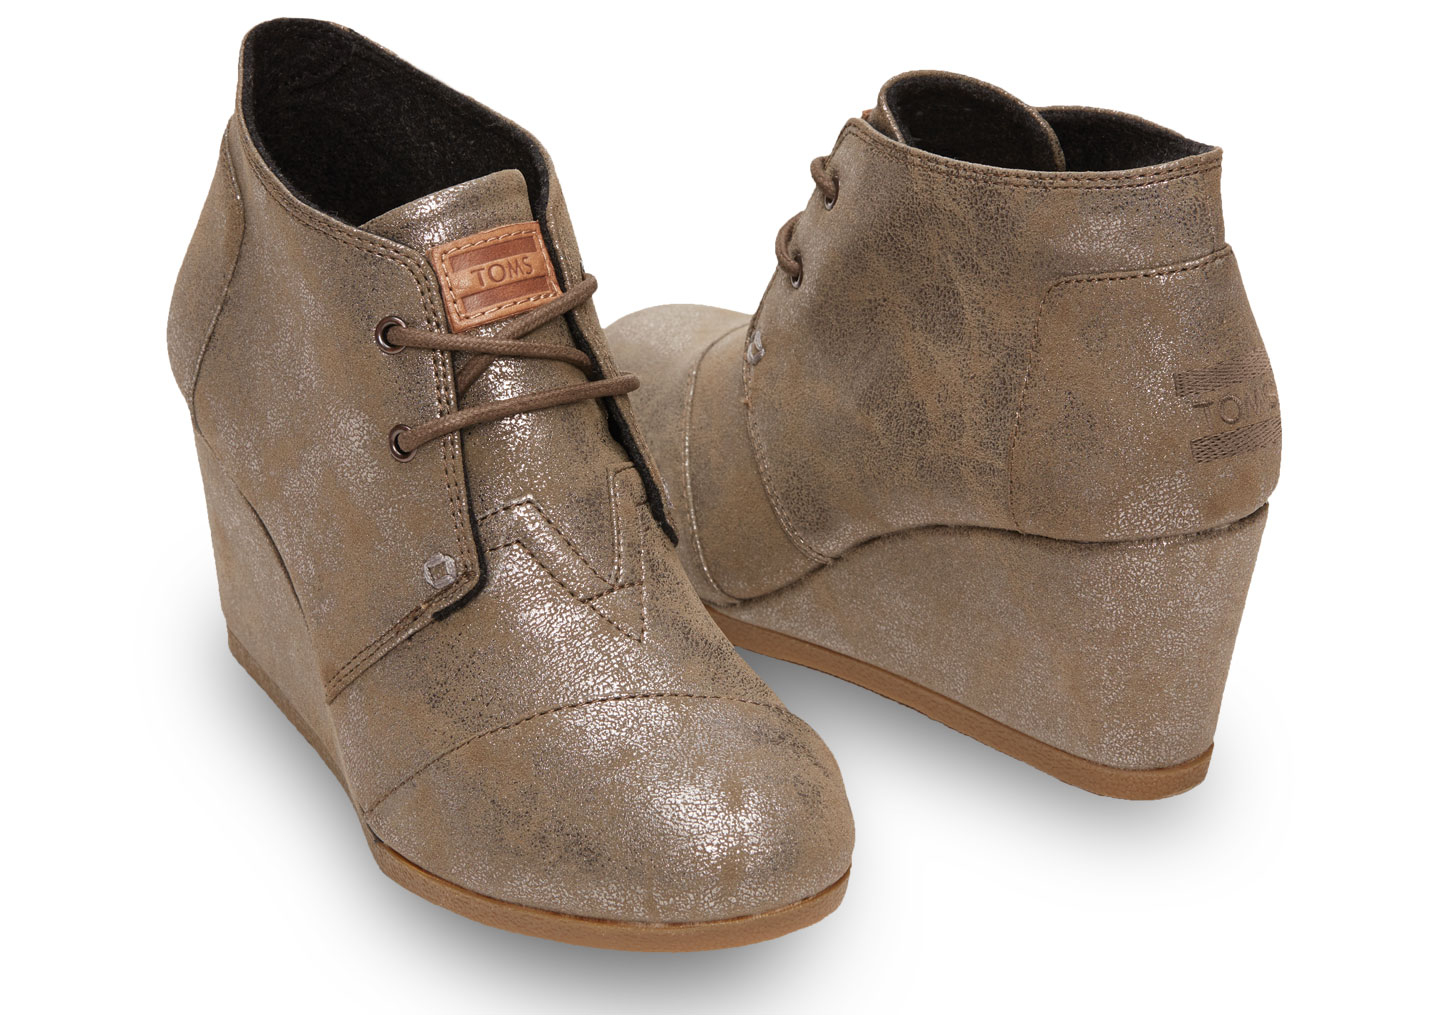 c9a48e459e0 Lyst - TOMS Desert Lace-up Wedge Bootie in Metallic